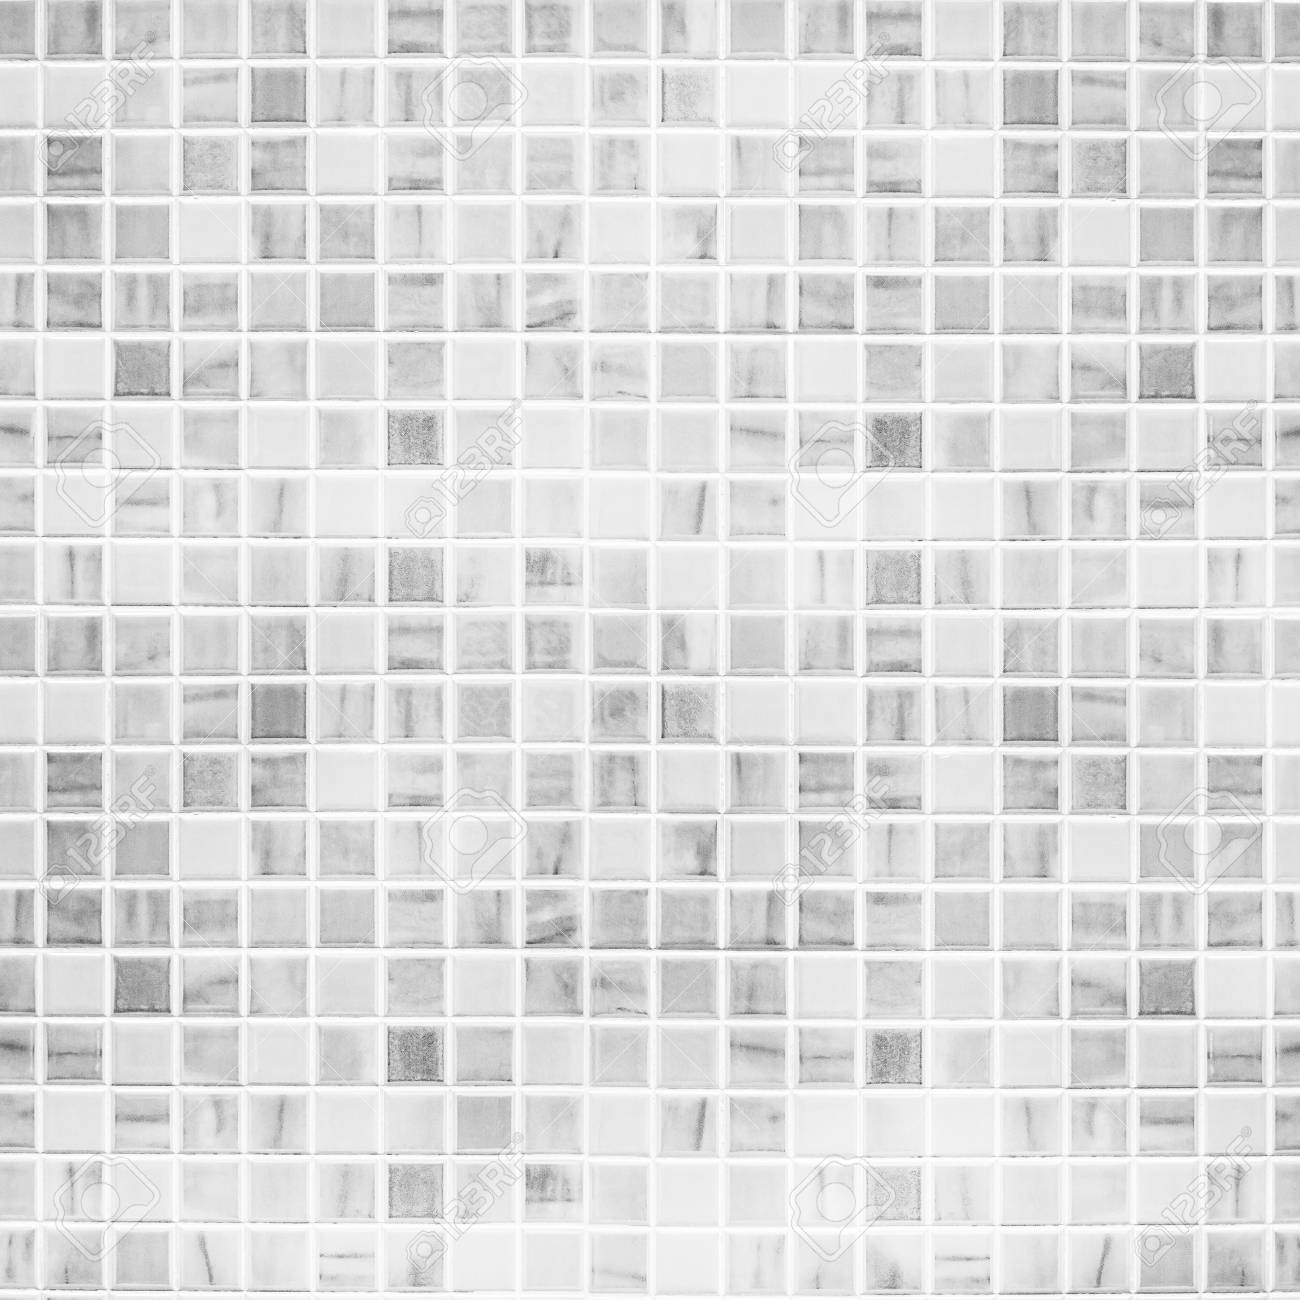 White Ceramic Tile Wall ,Home Design Bathroom Wall Background Stock ...